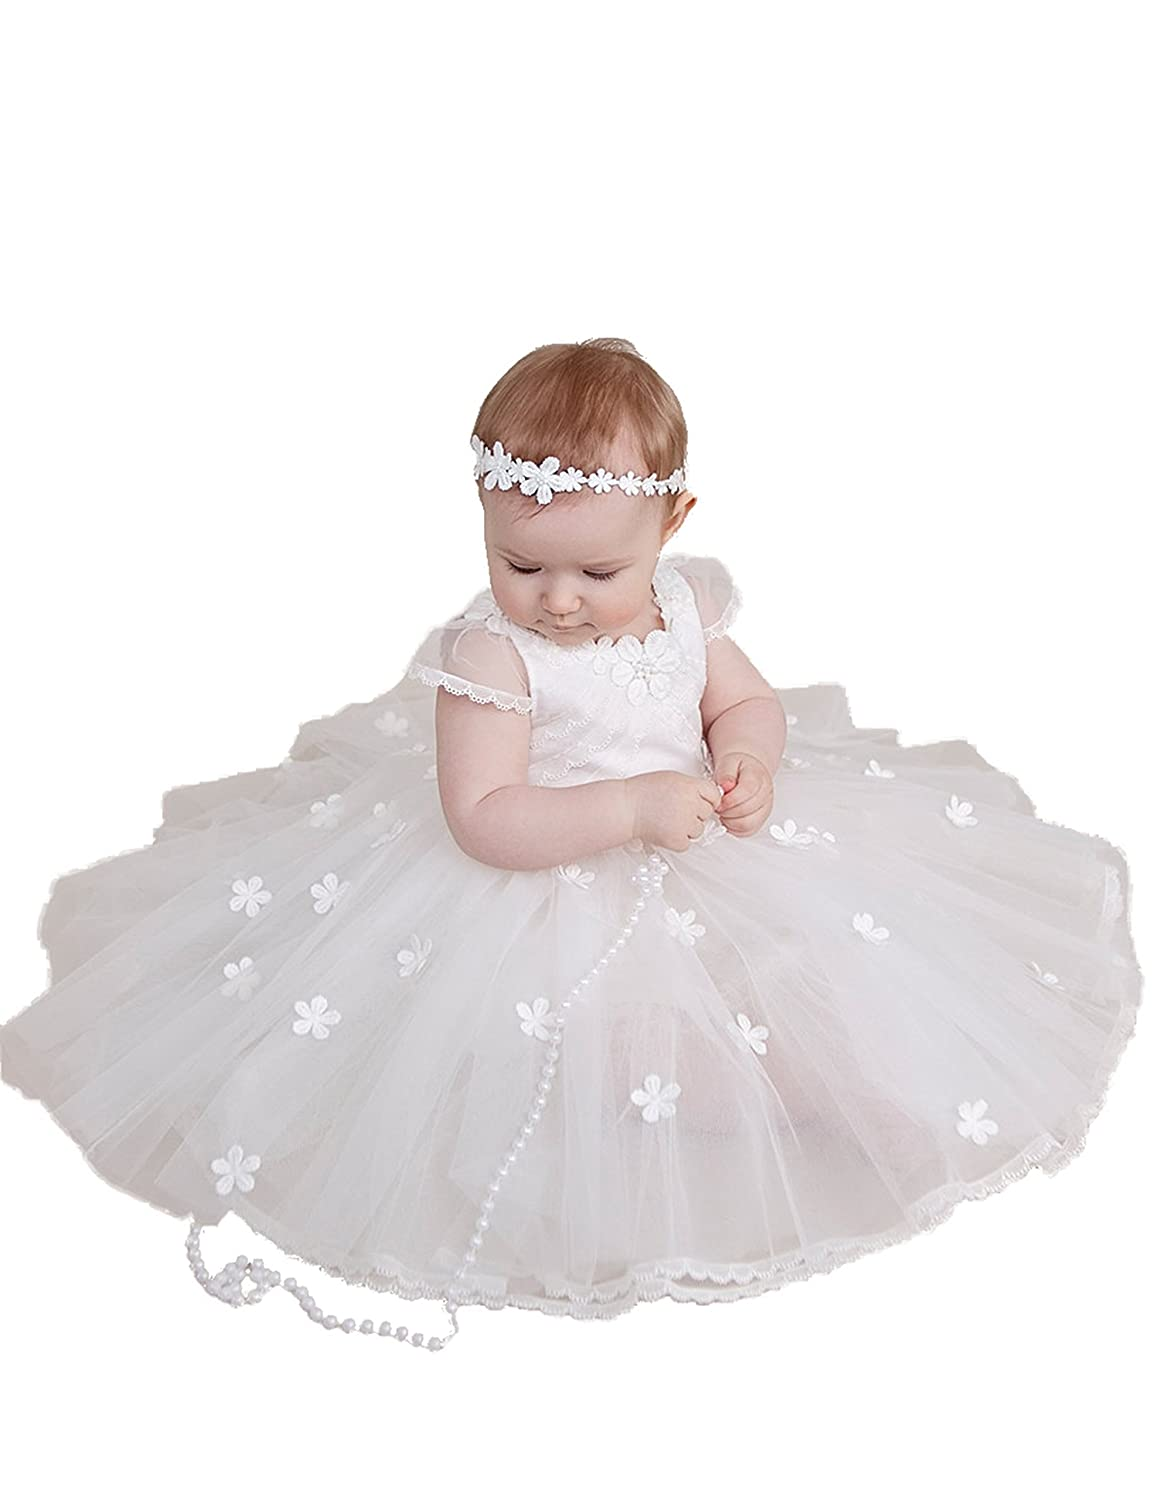 BuyBro White/Ivory Tulle Flowers Blessing Christening Dresses Gowns